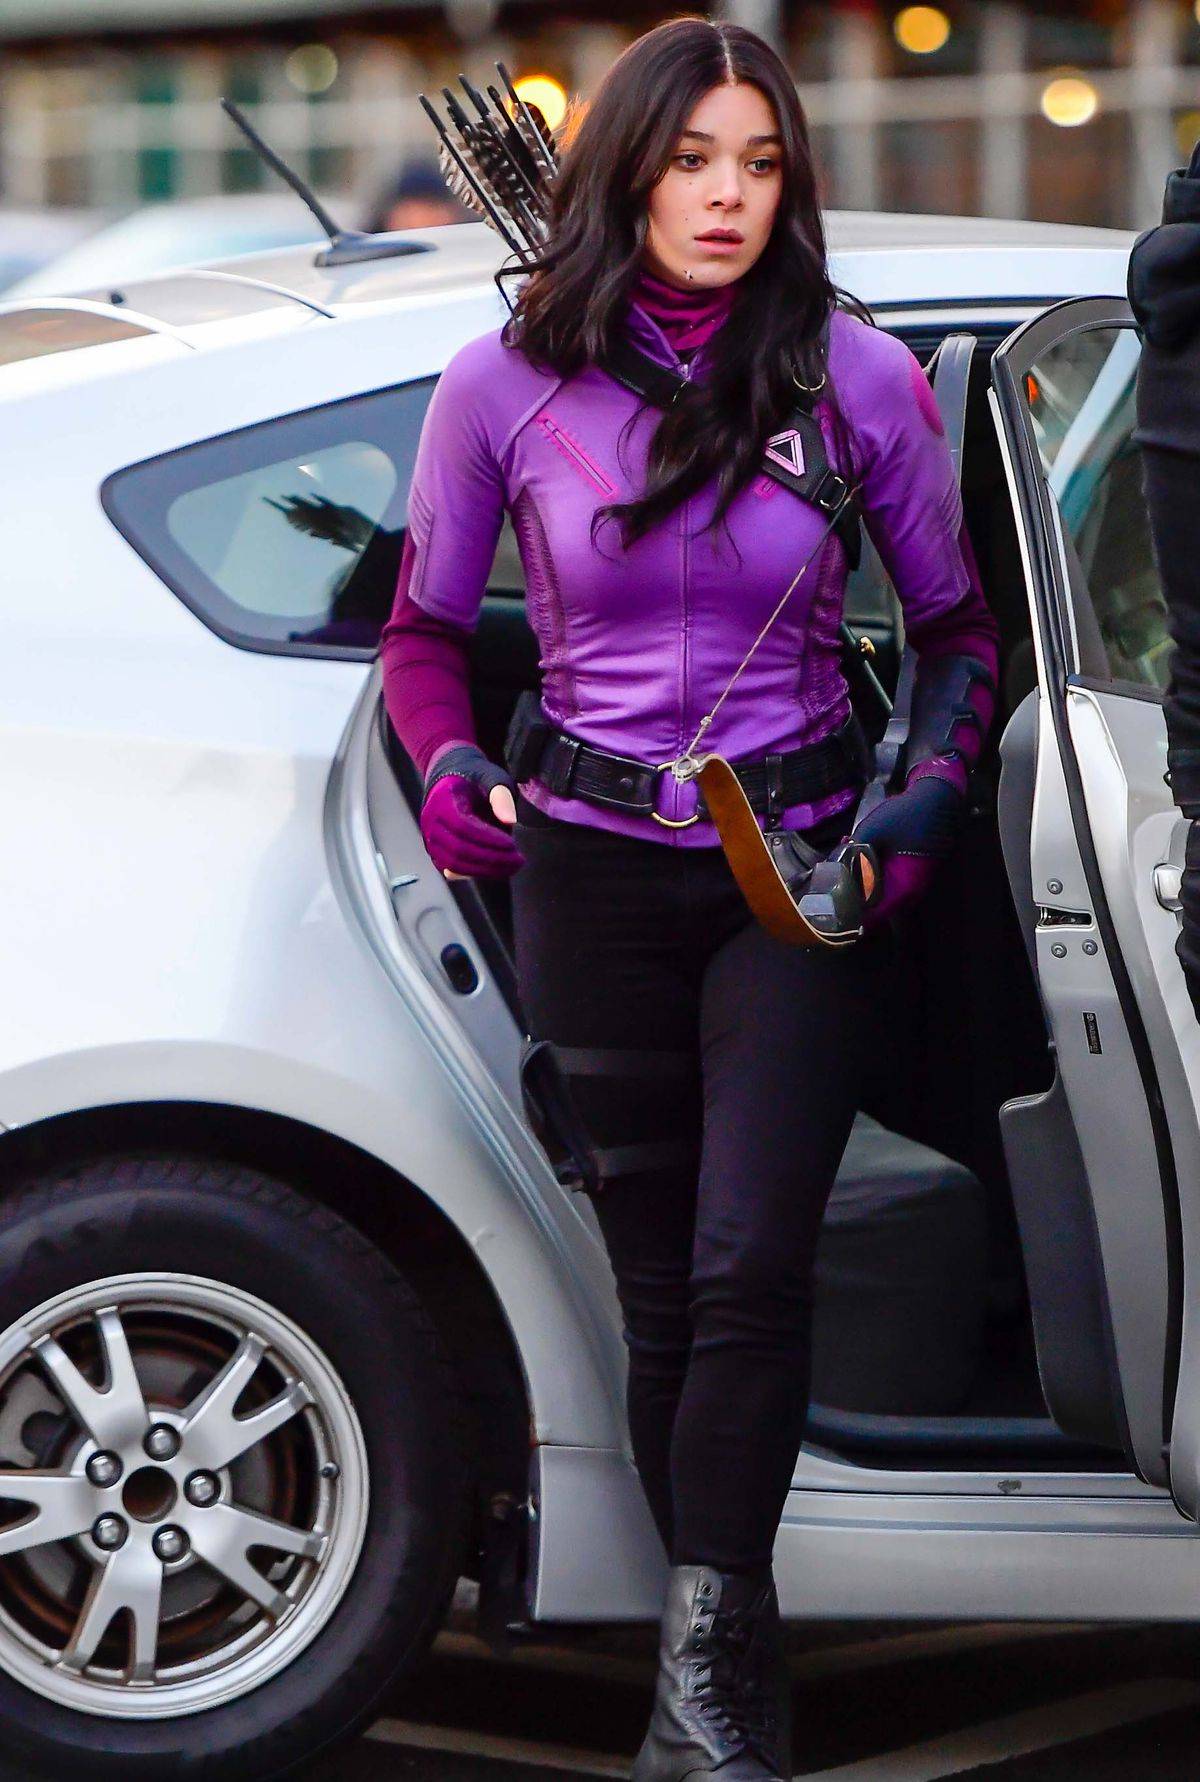 Hailee Steinfeld as Kate Bishop in marvel's Hawkeye series stepping out of a car in New York City